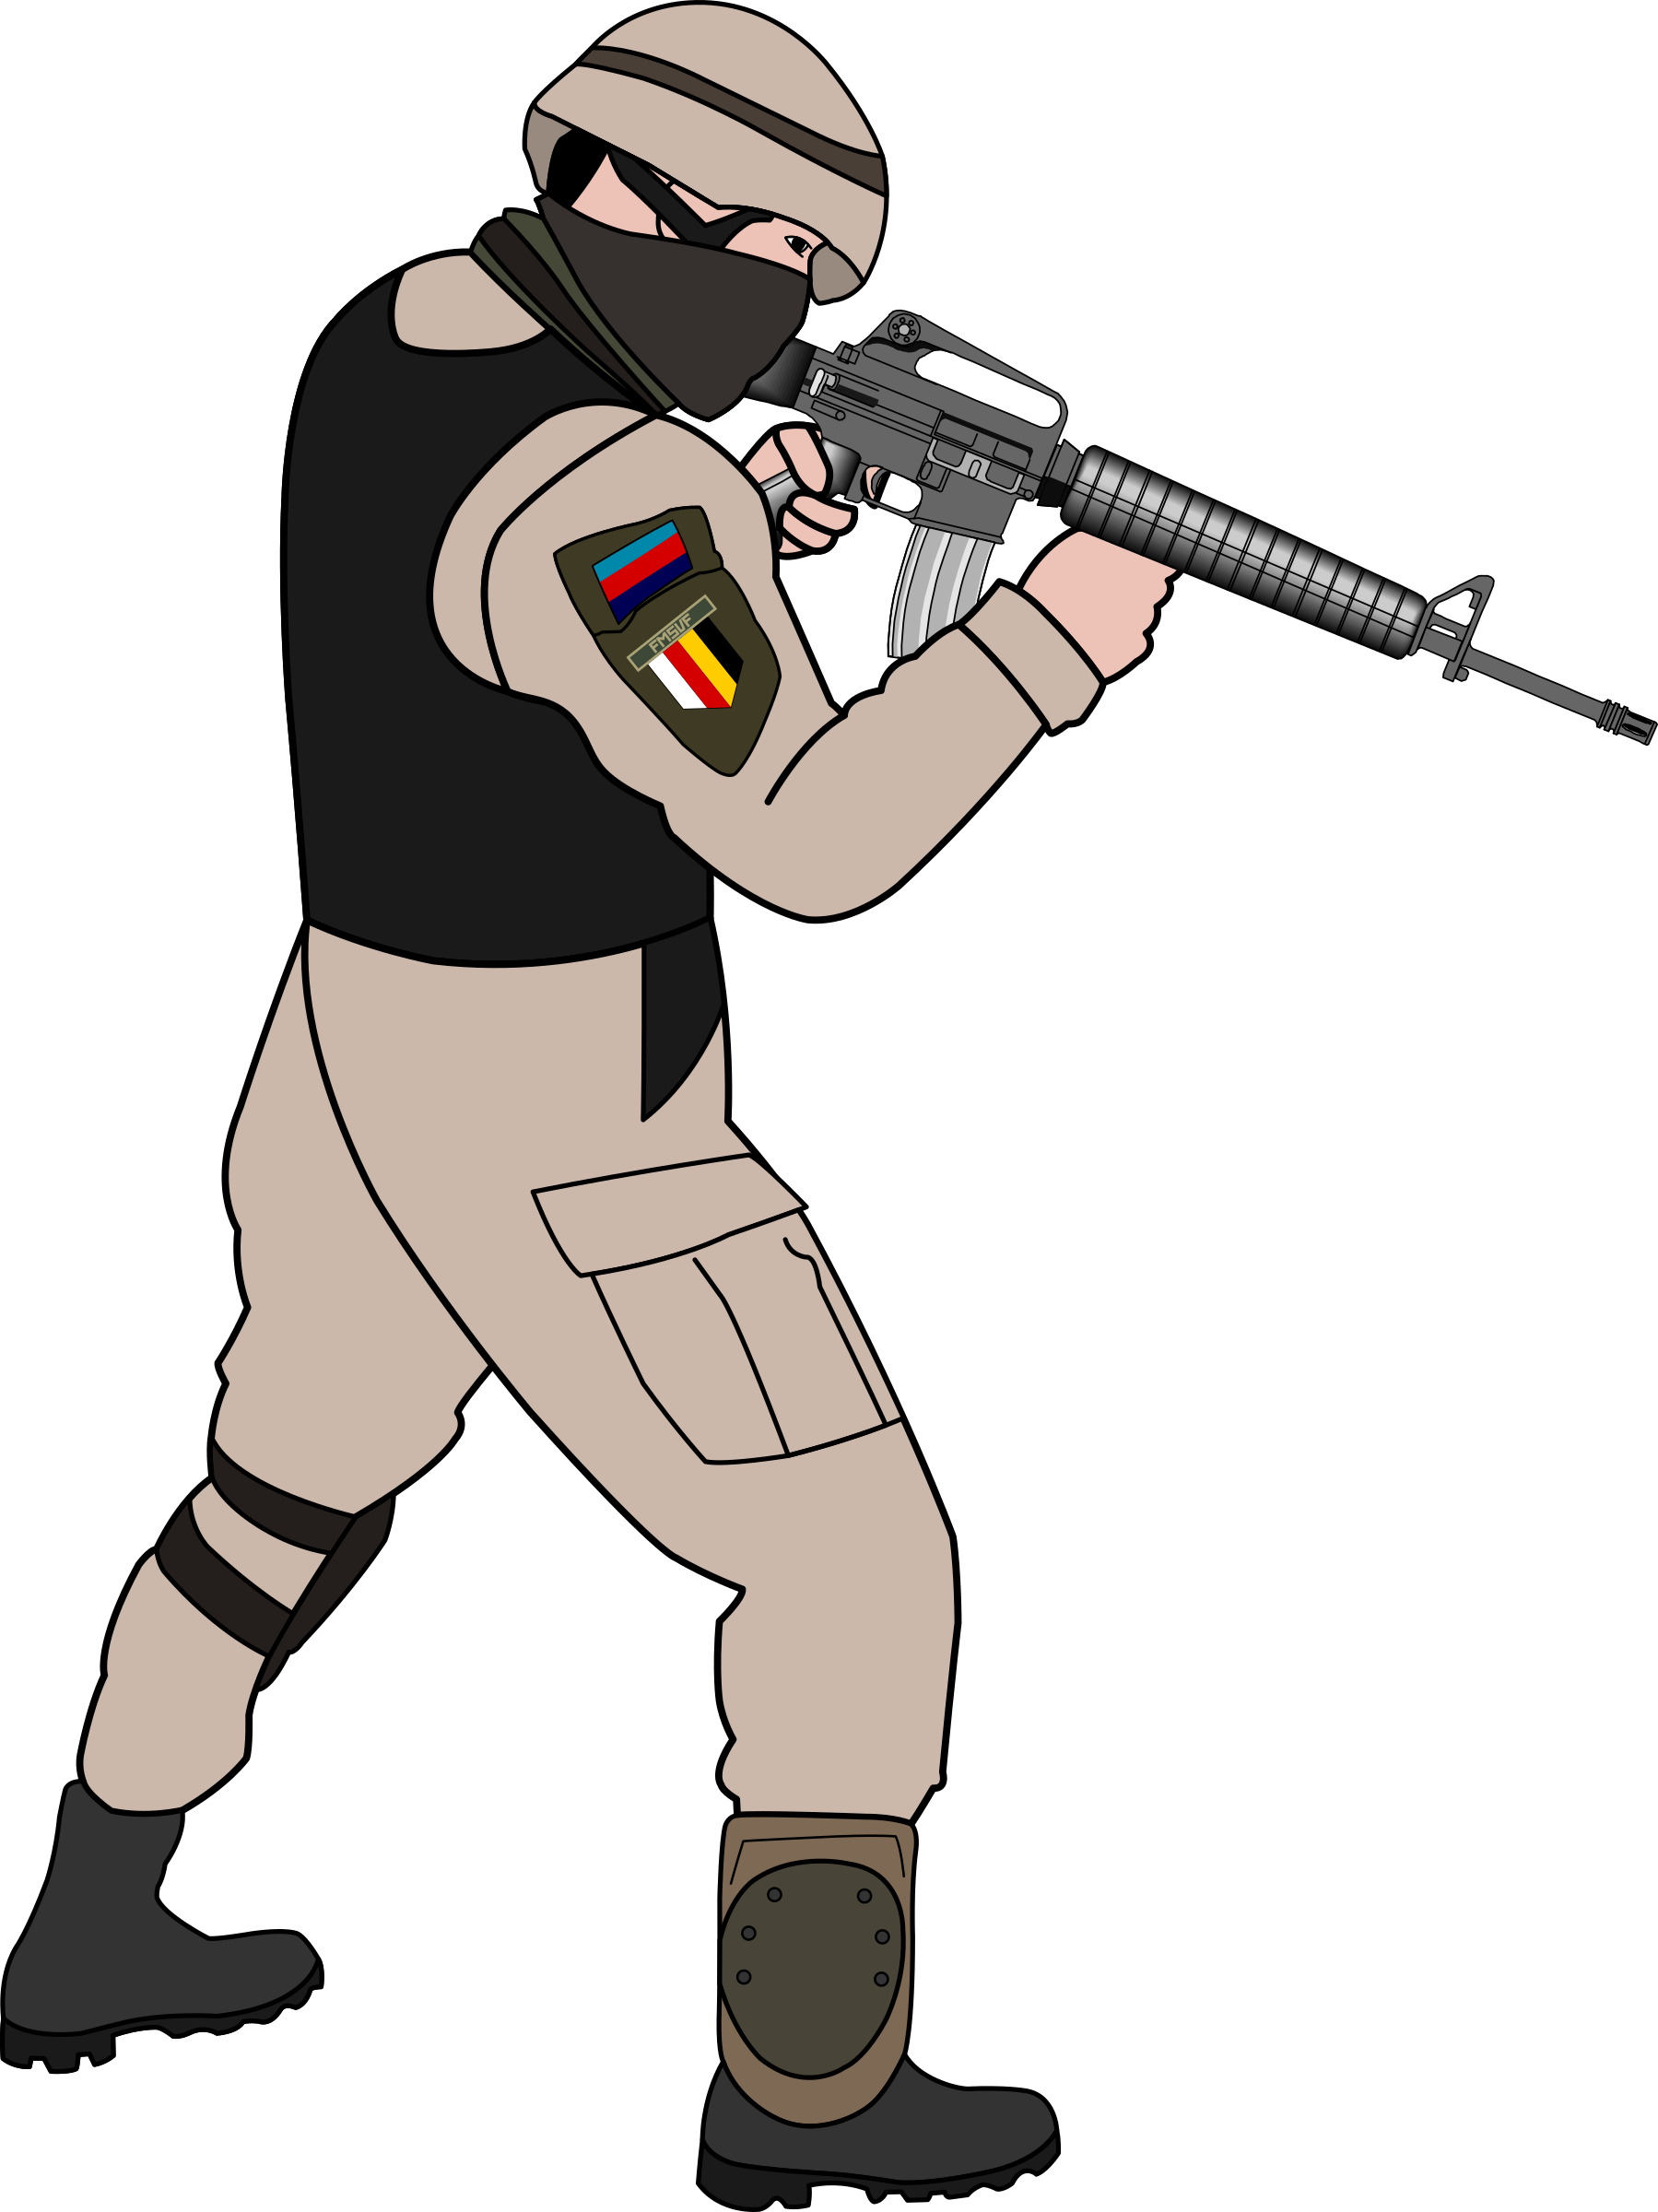 Clipart gun soldier. In action big image